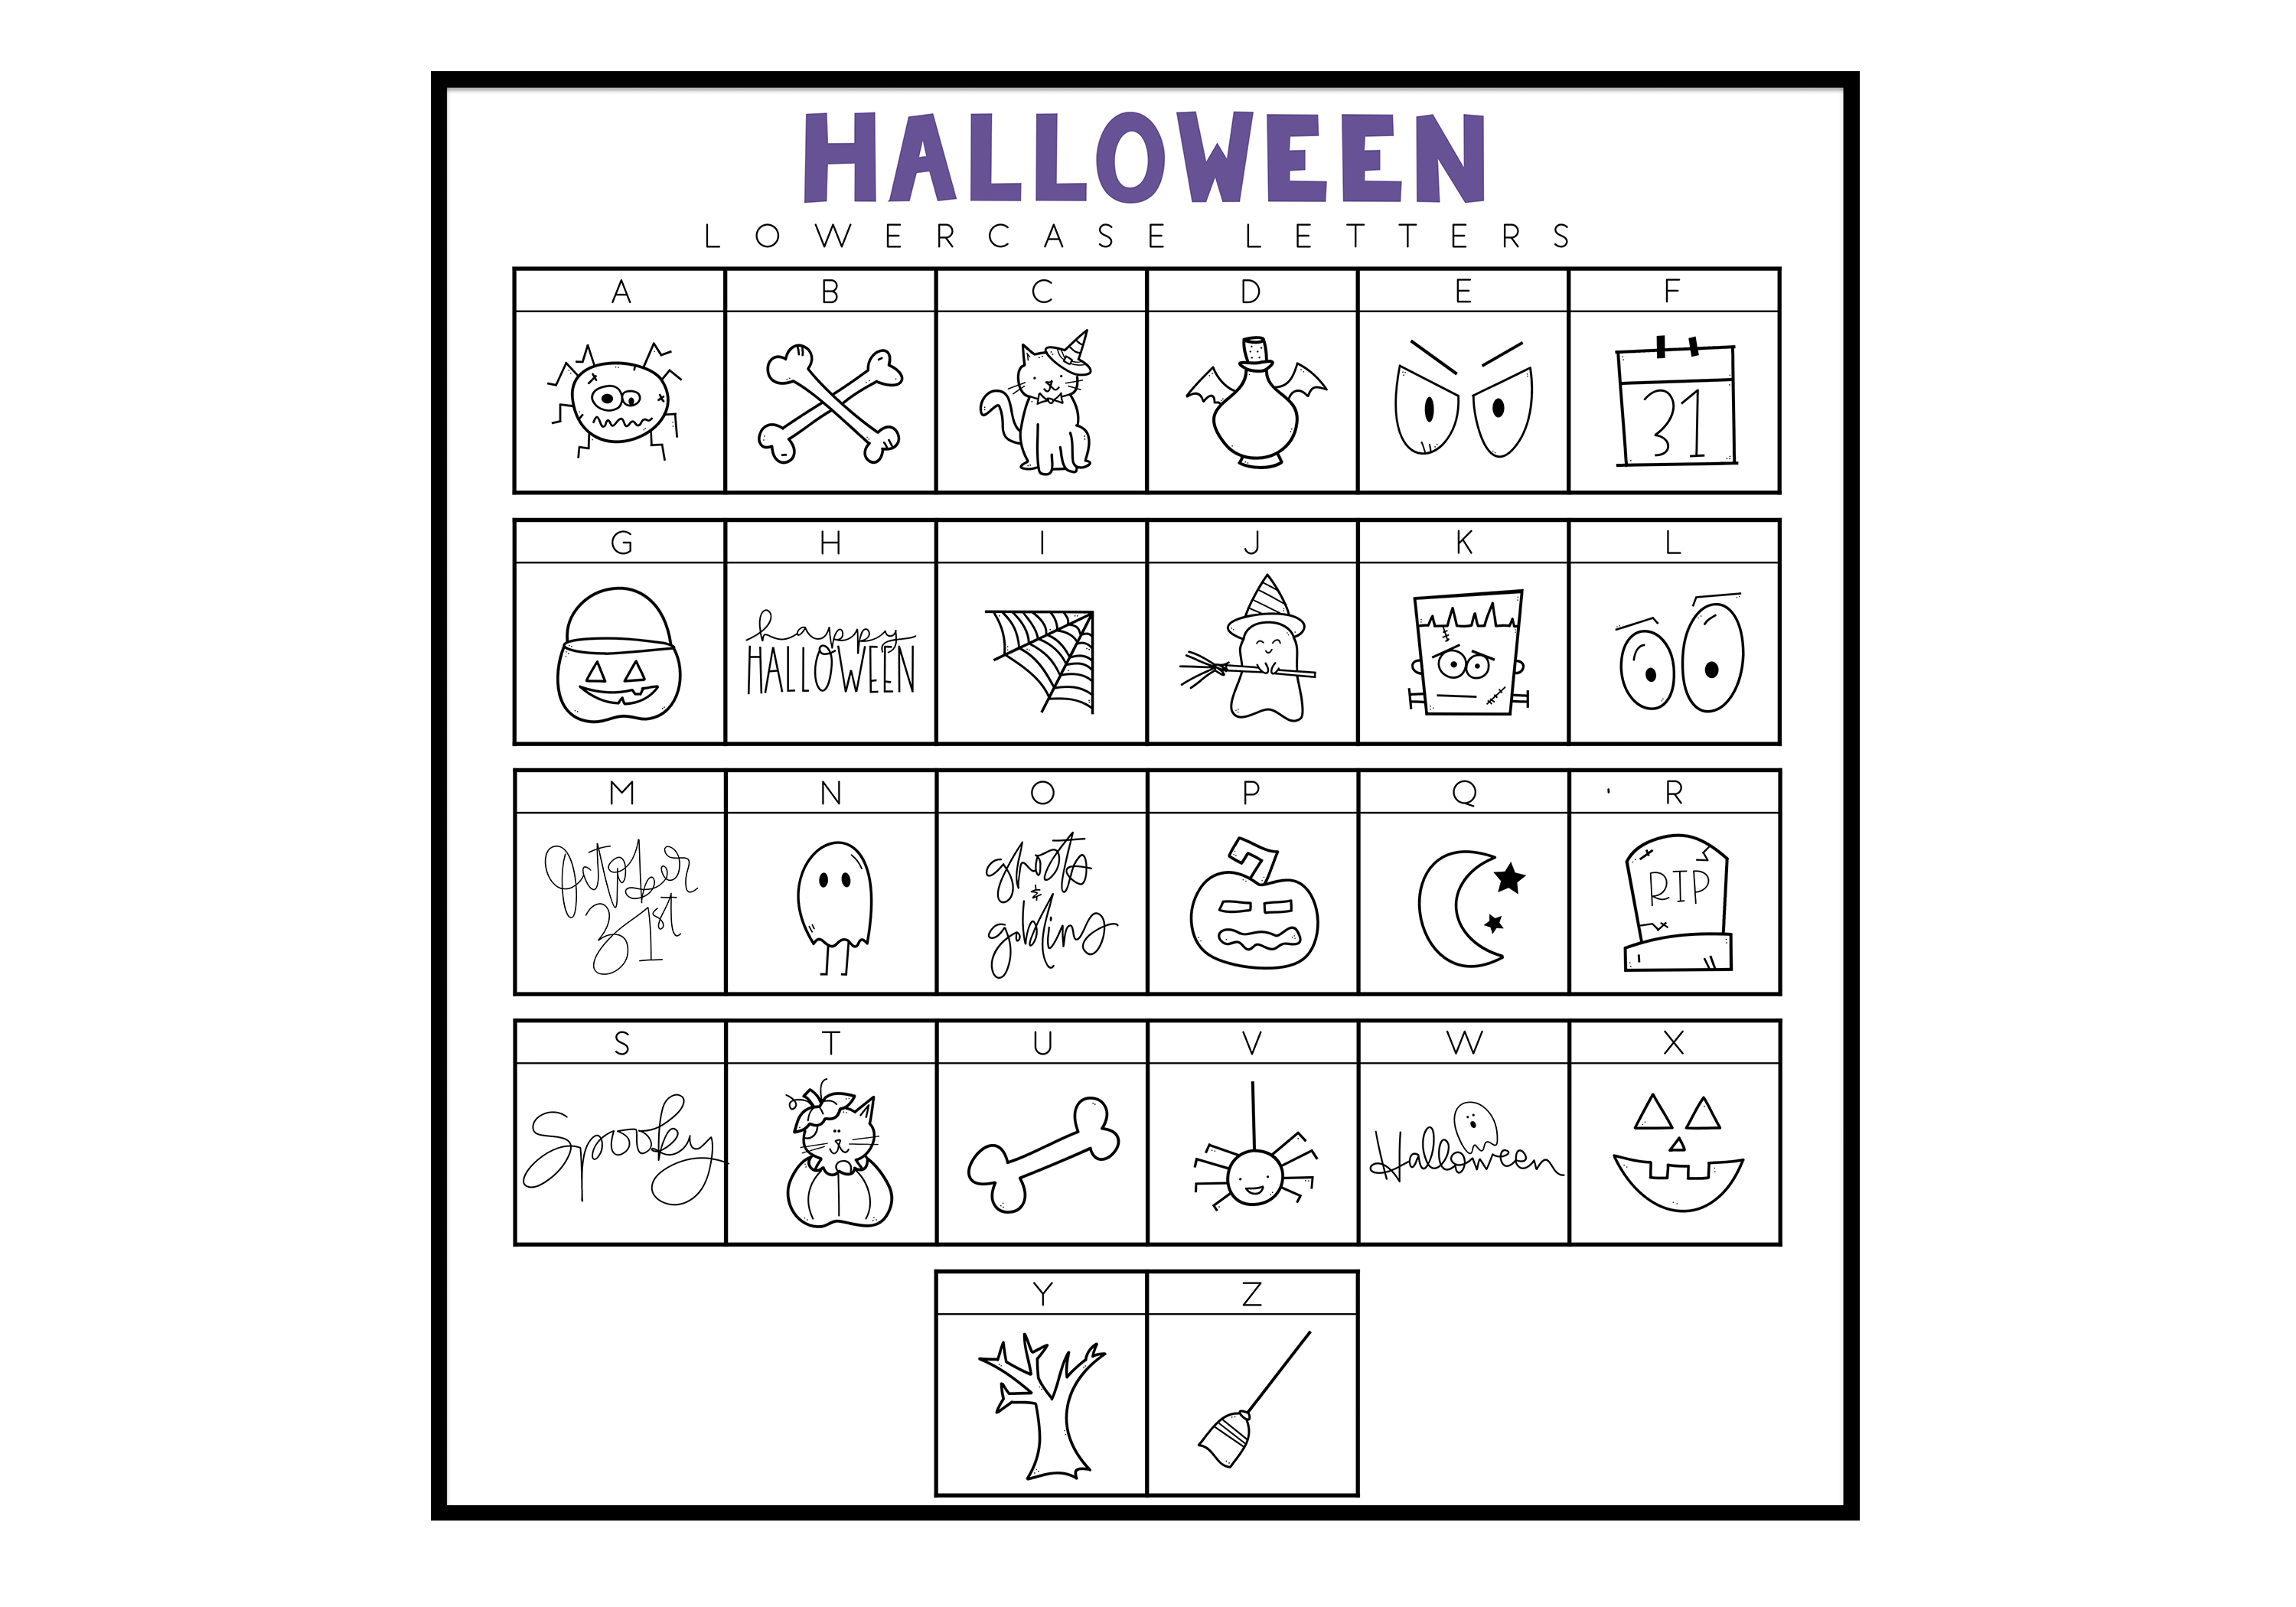 Creep It Real - A Spooky Halloween Doodles Font example image 2